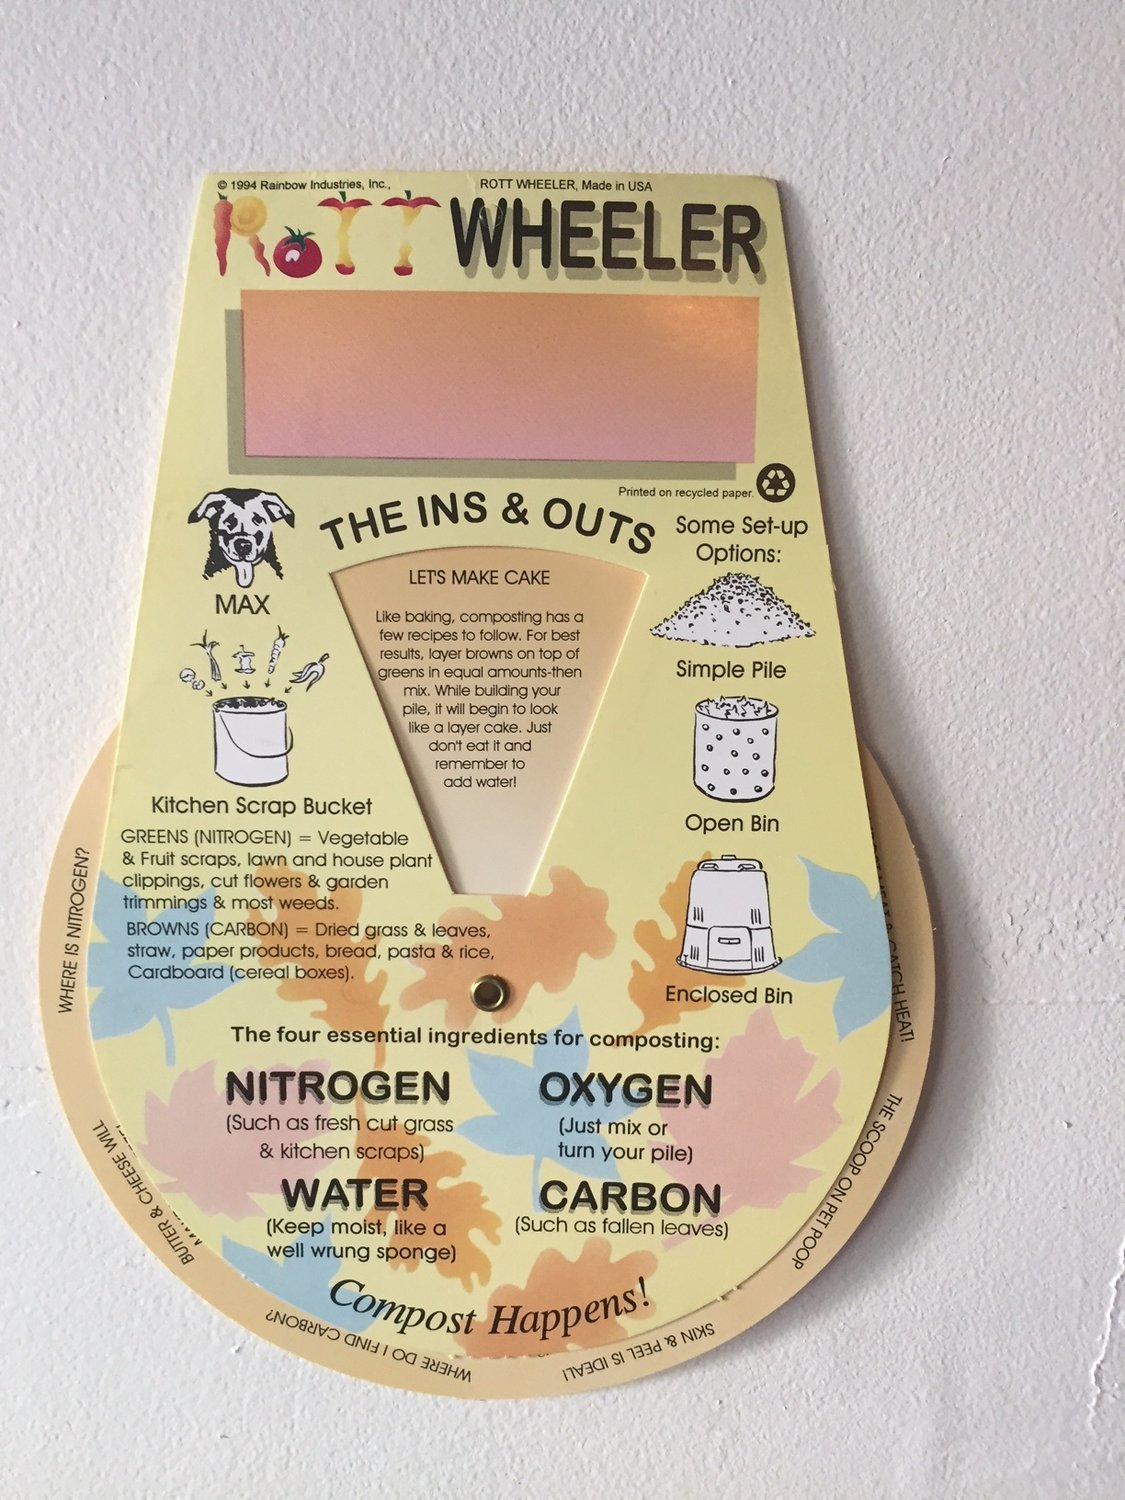 Rottwheeler - educational guide wheel